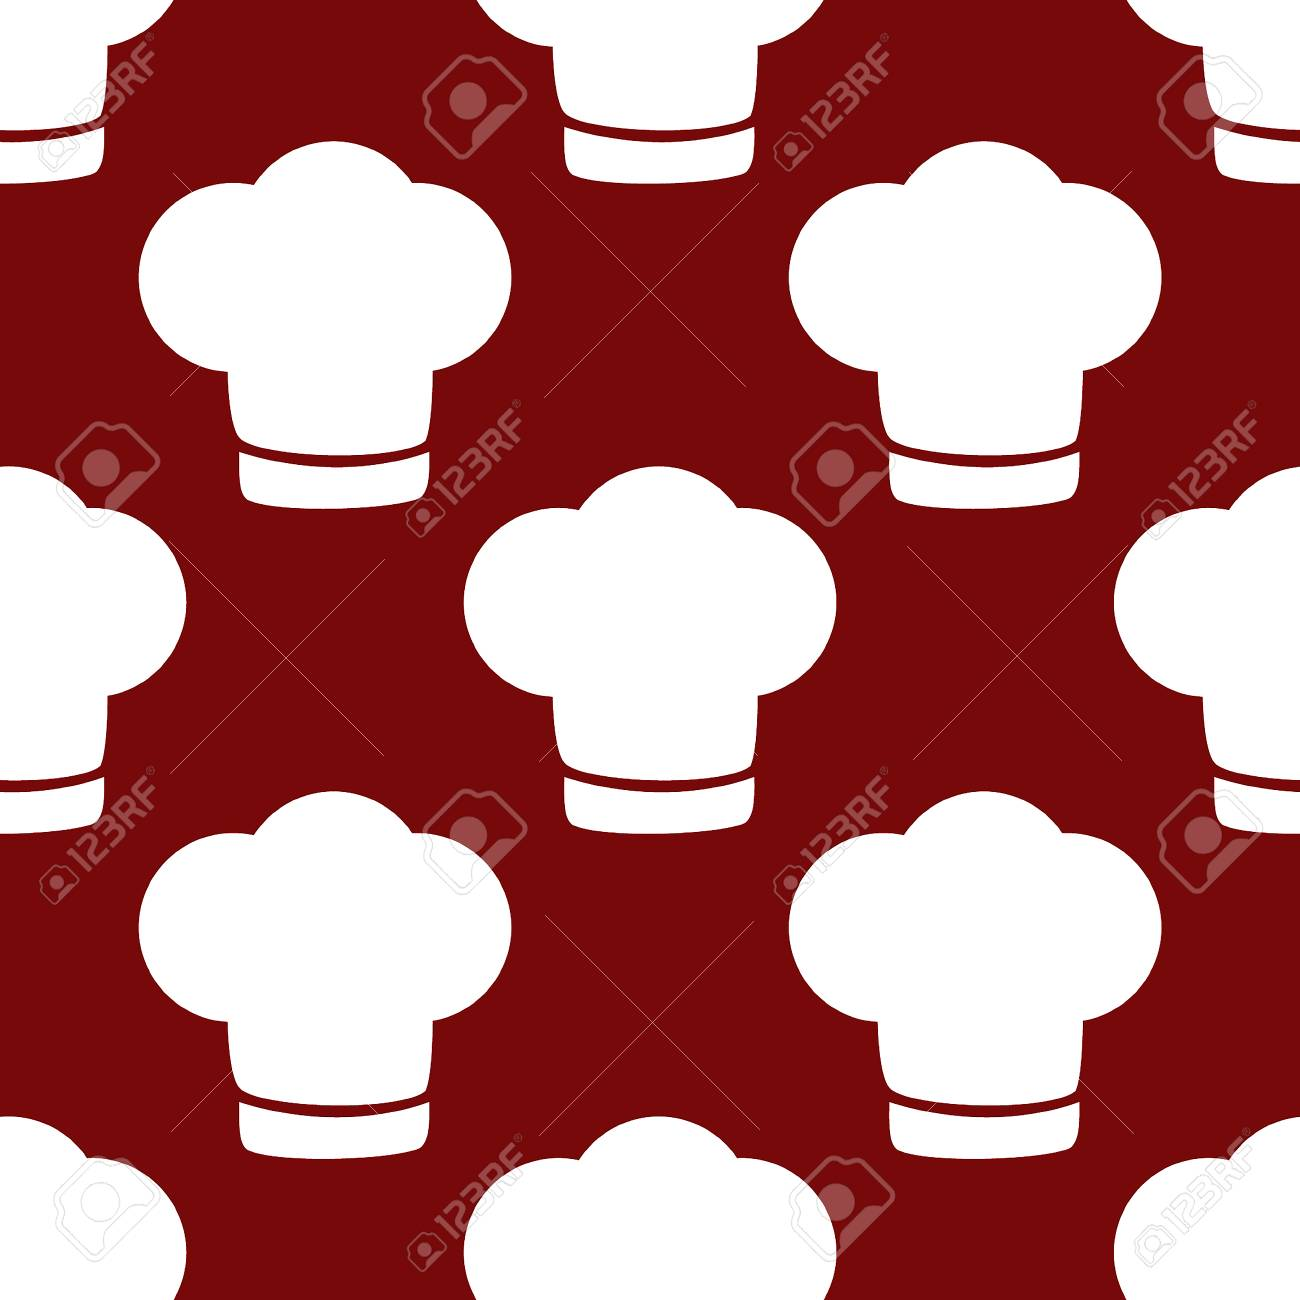 Chef cap web icon. flat design. Seamless gray pattern. Stock Photo -  31458451 d86d30f1ba9